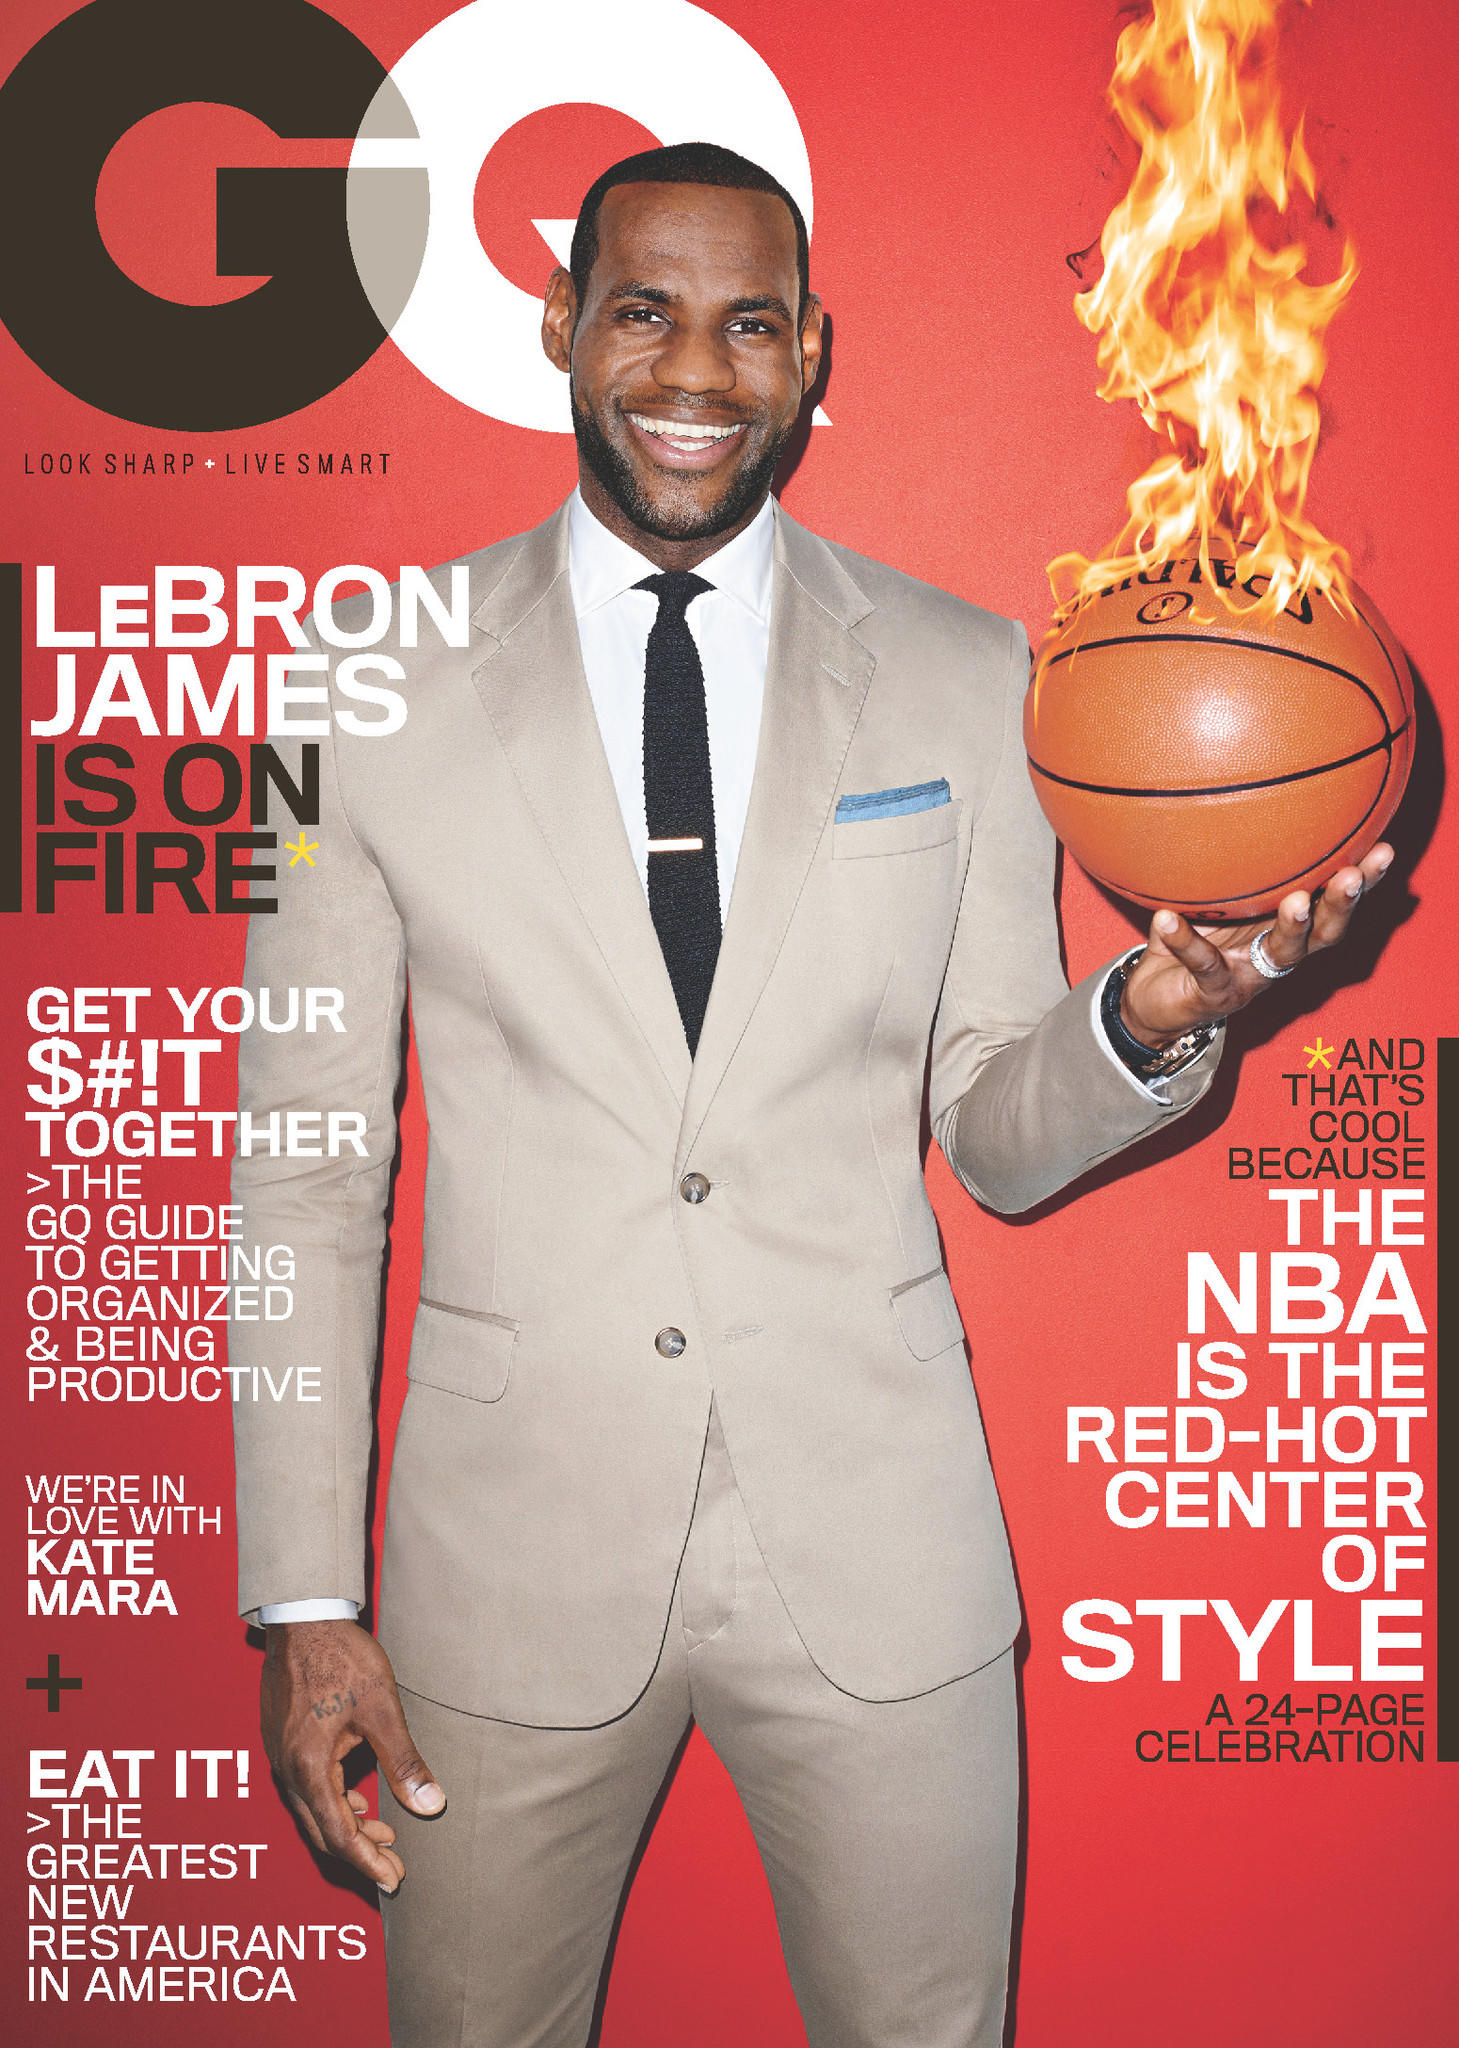 LeBron James gives GQ an interview in their March issue.